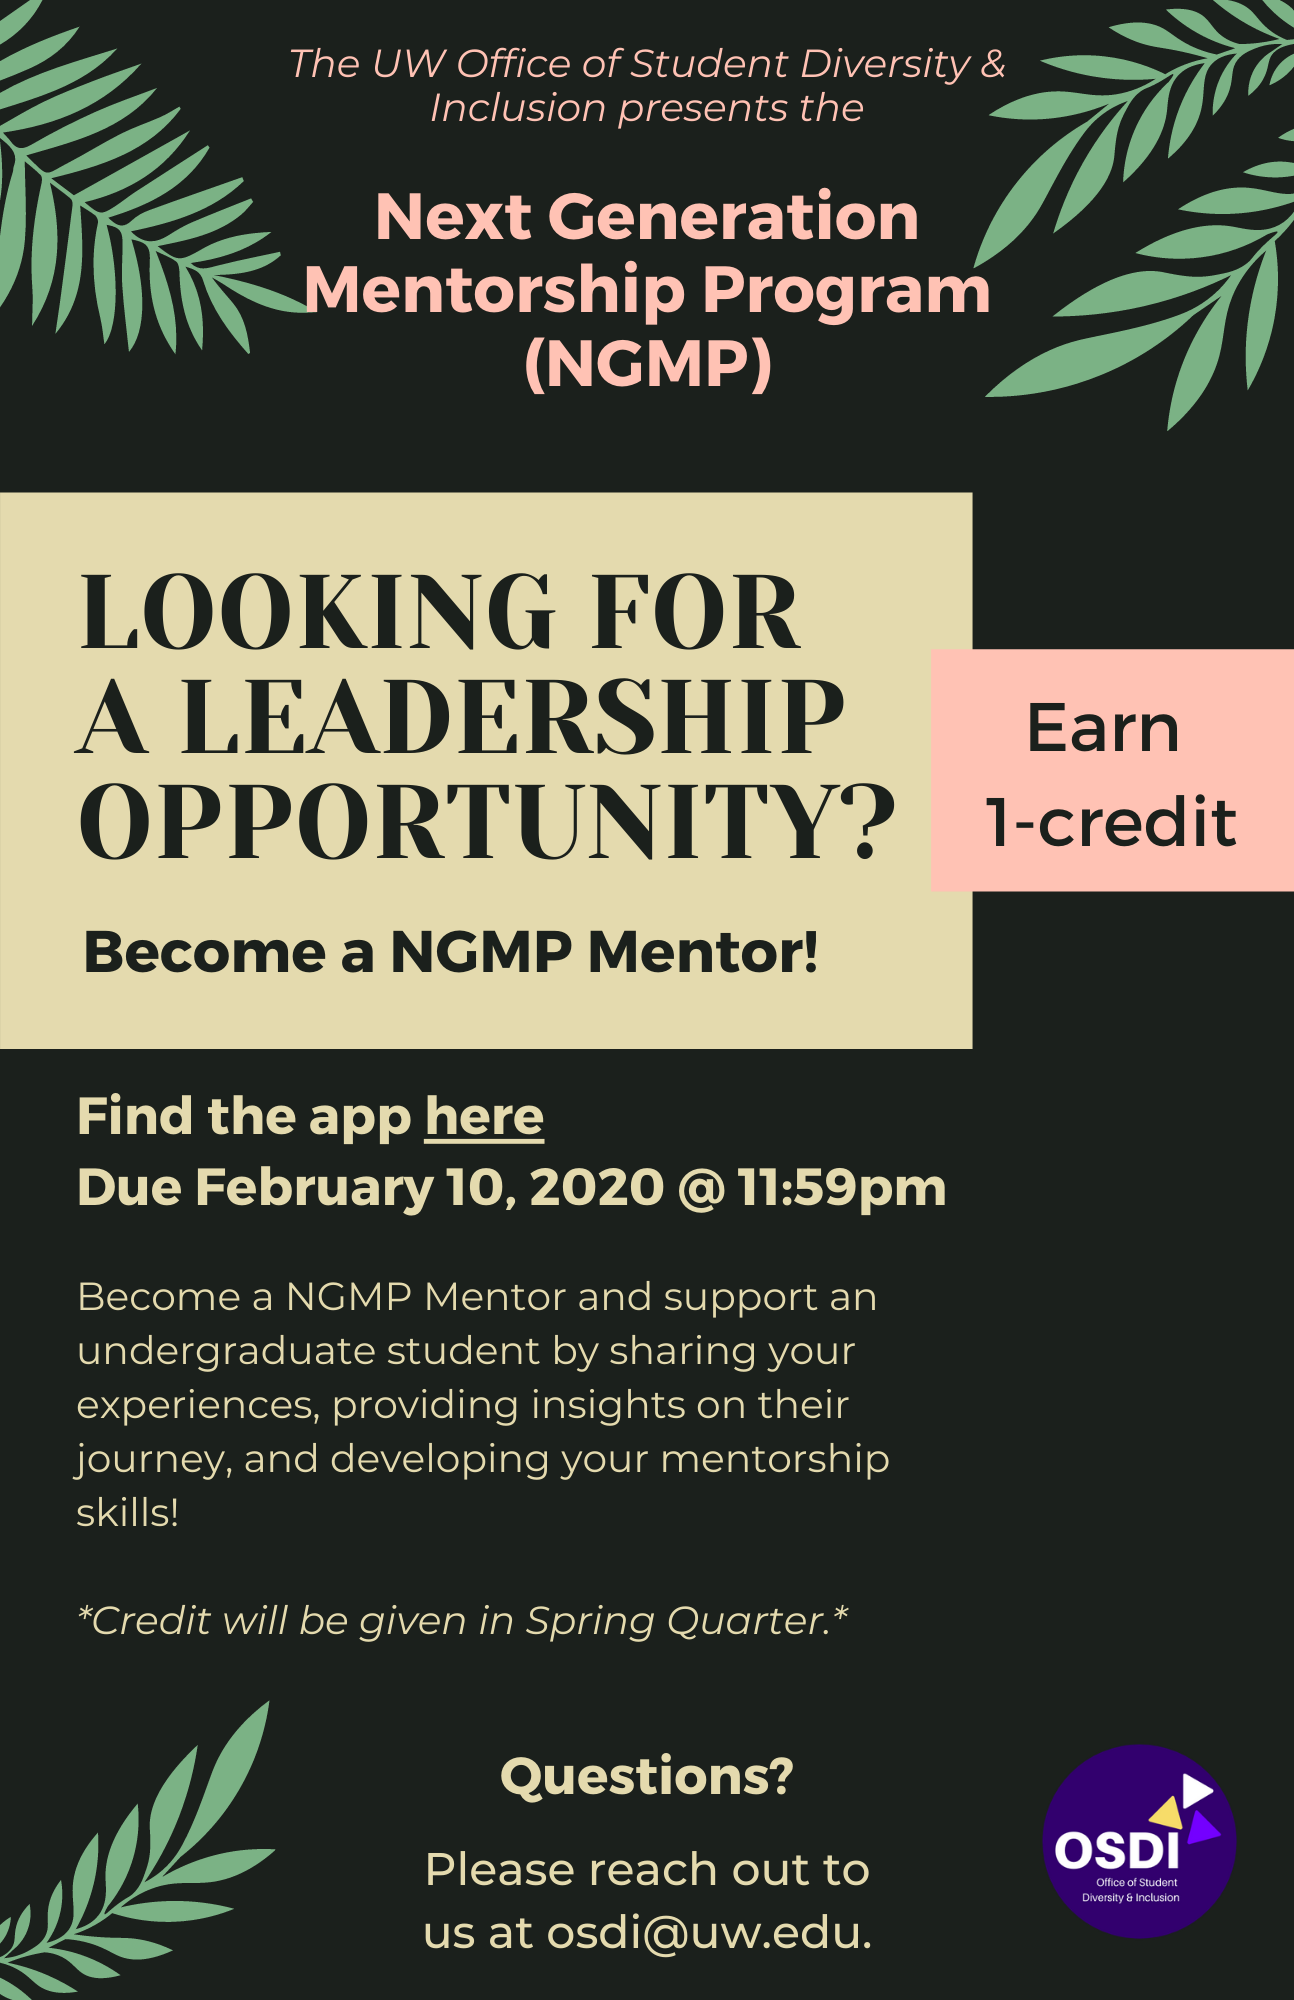 Become a NGMP Mentor if you are looking for a leadership opportunity and earn 1 credit in Spring 2021! Apply below.